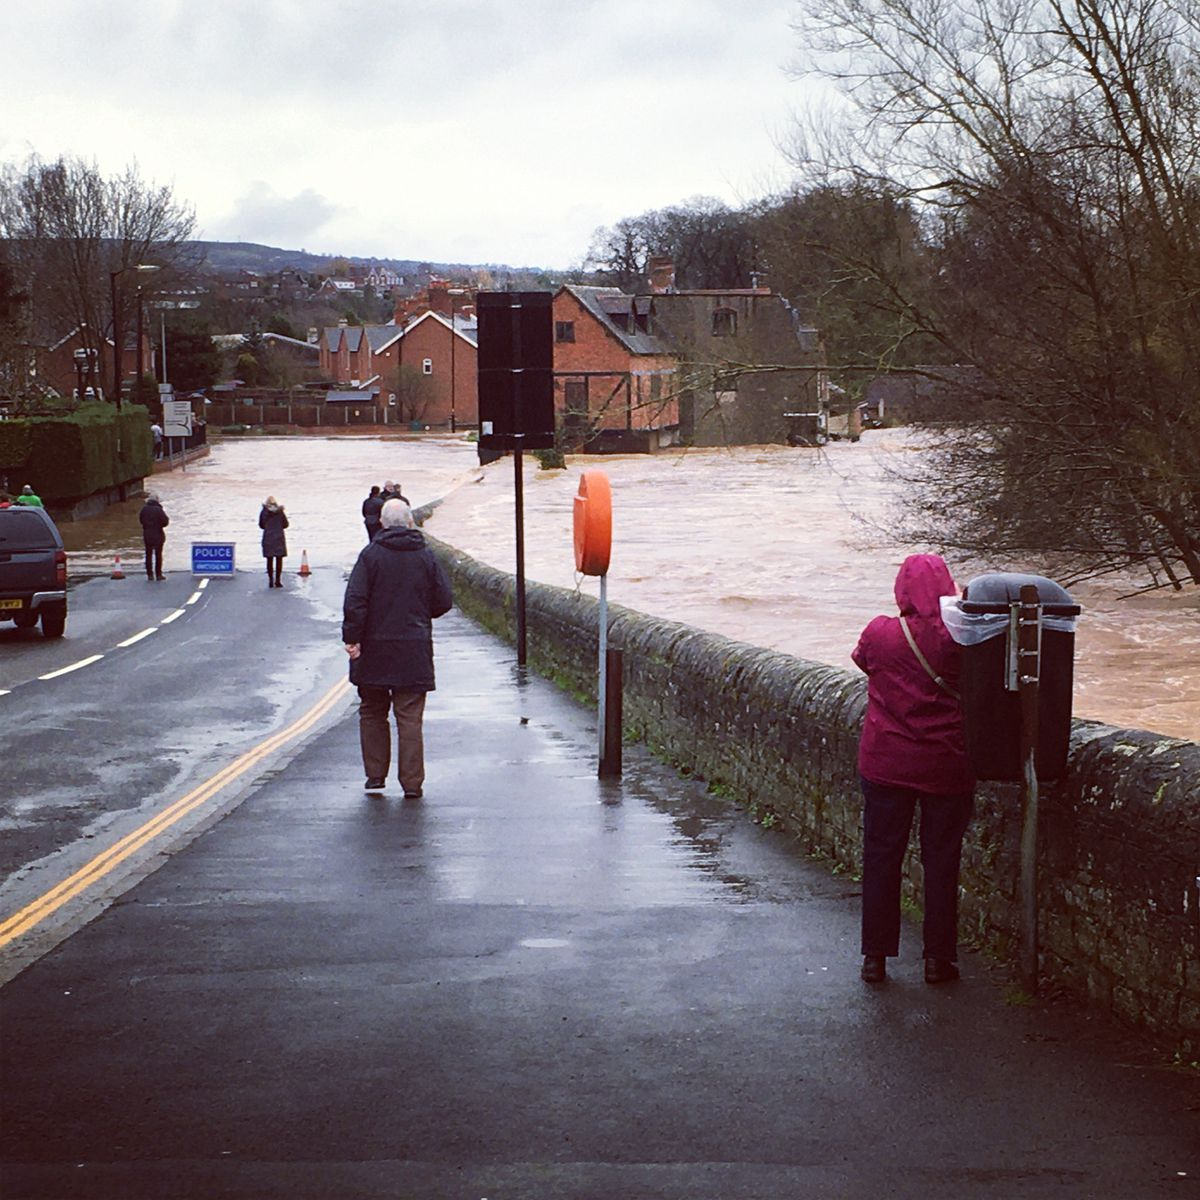 Floding at the River Teme in Ludlow after Storm Dennis. Photo: Victoria Martin